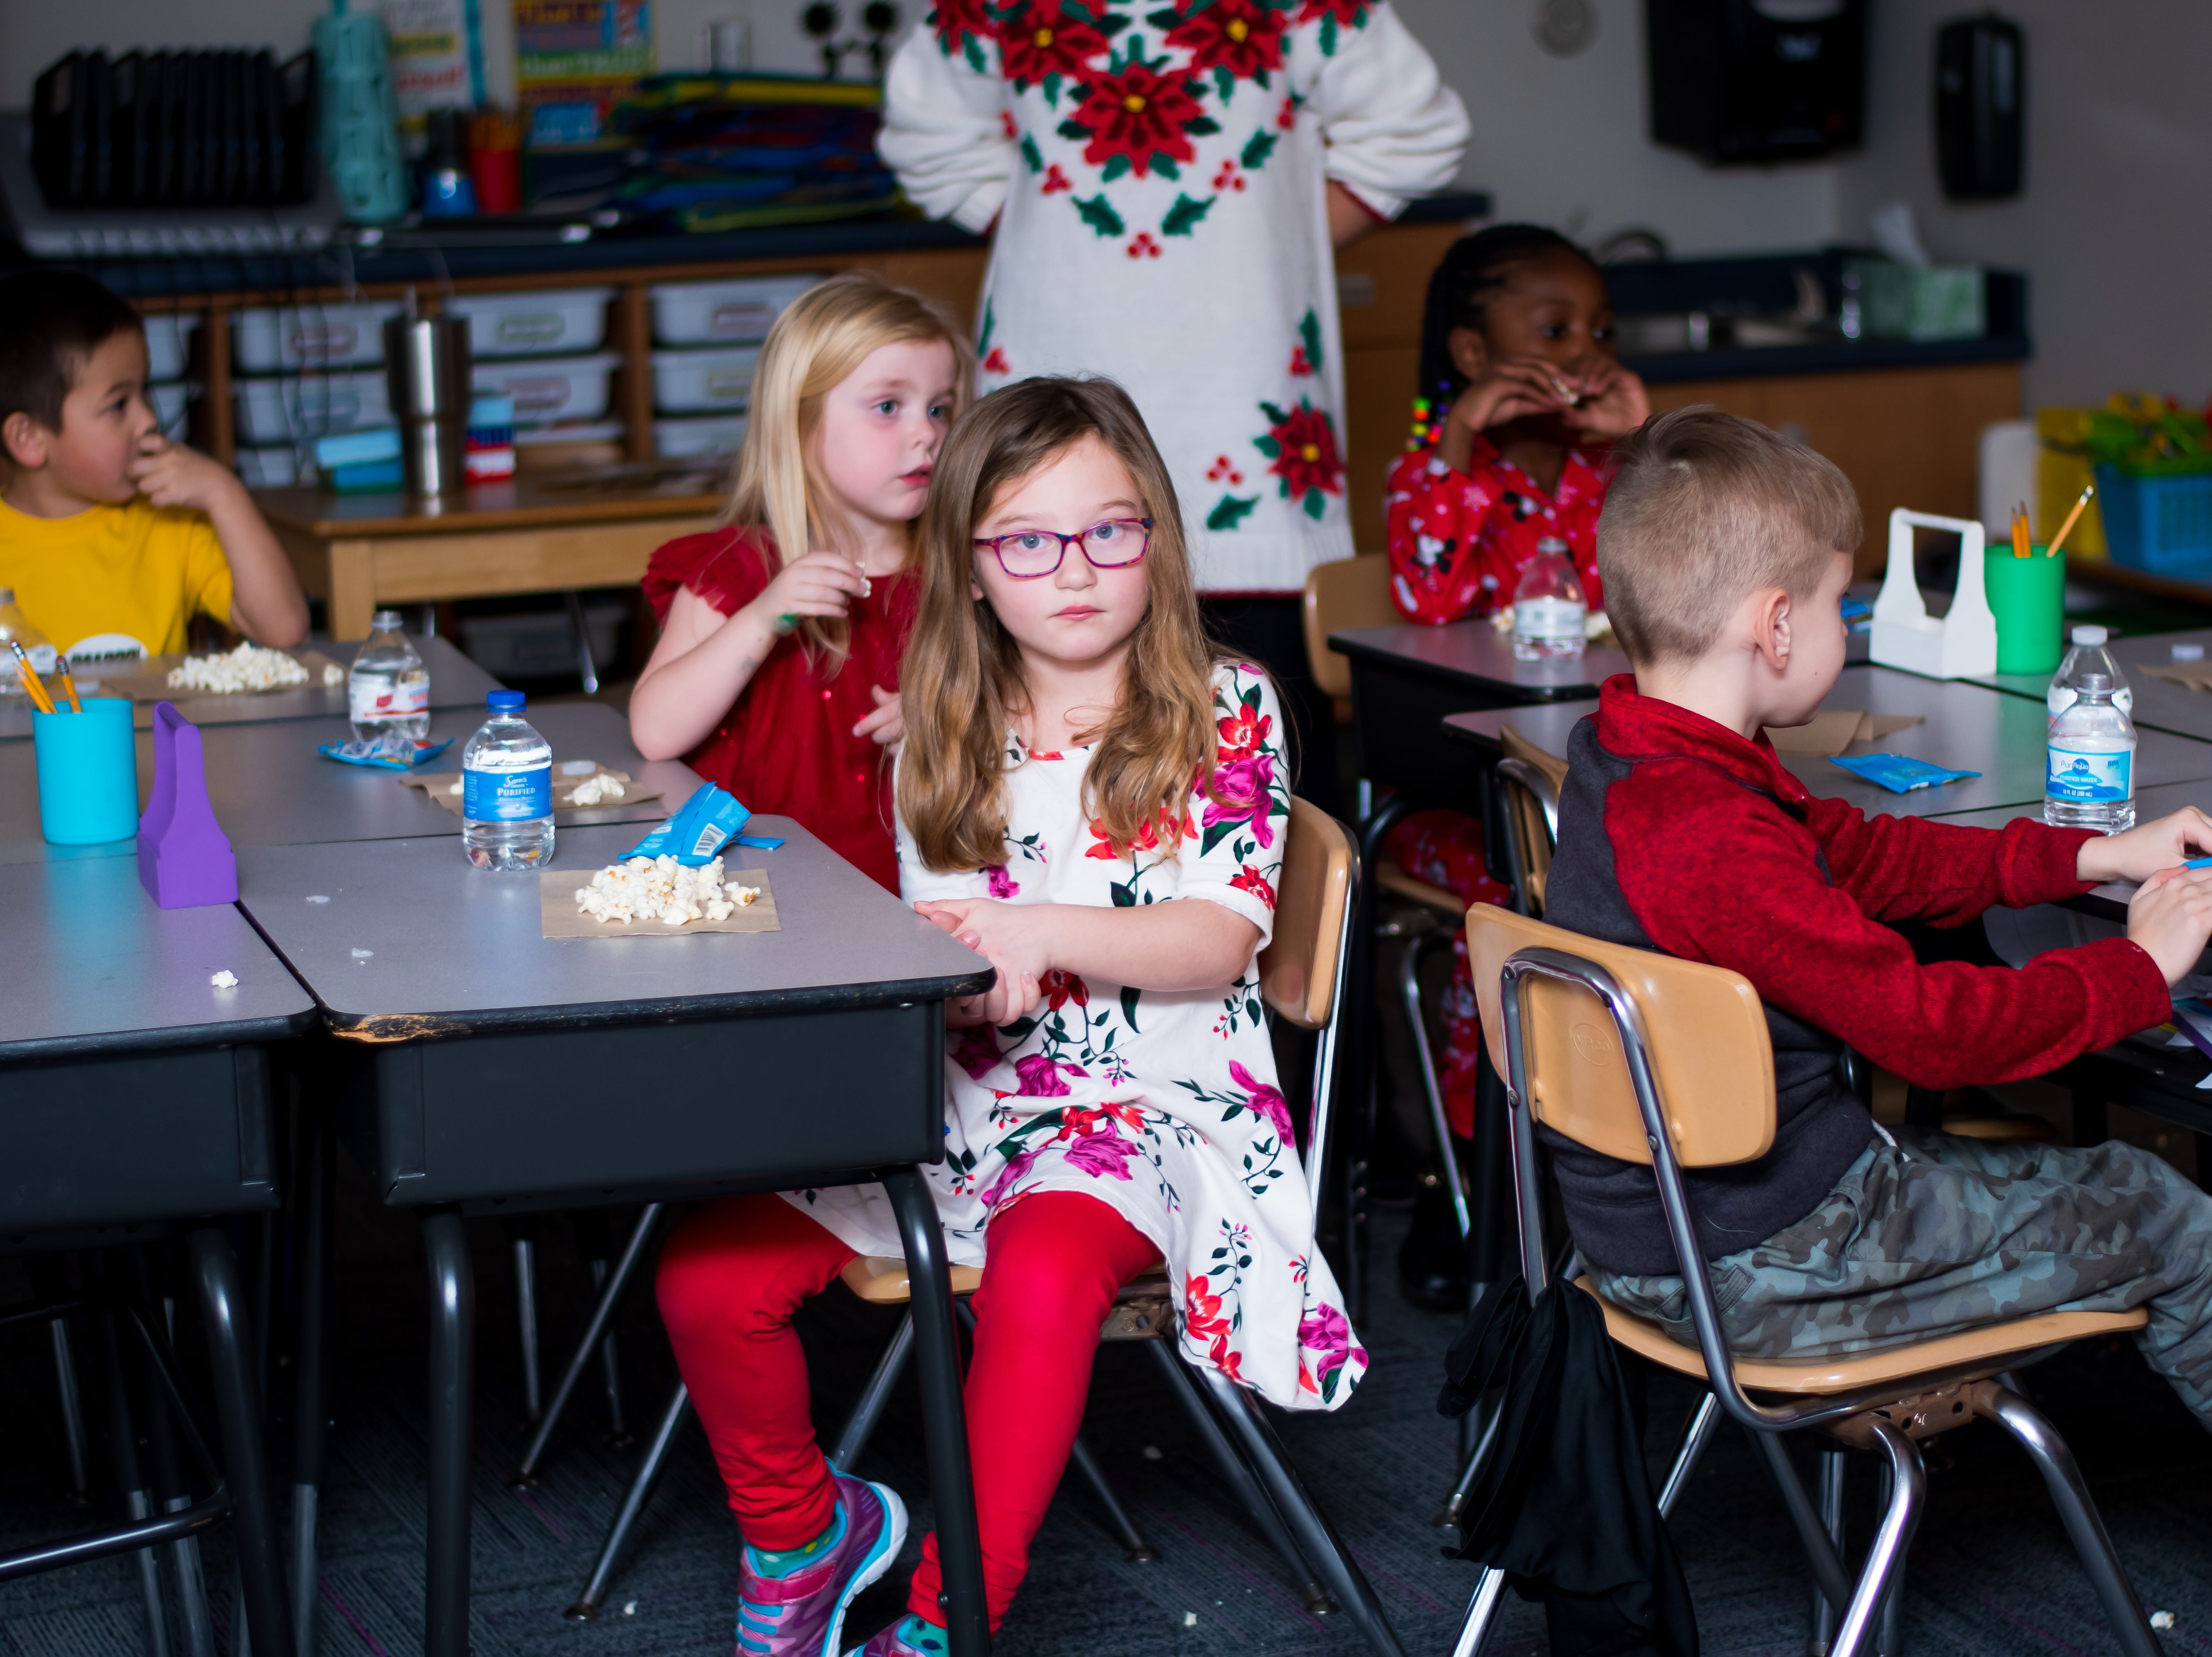 Students enjoy a snack and a Christmas movie on Friday, Dec. 21, 2018 at Karen Acres Elementary School in Urbandale for their winter party.